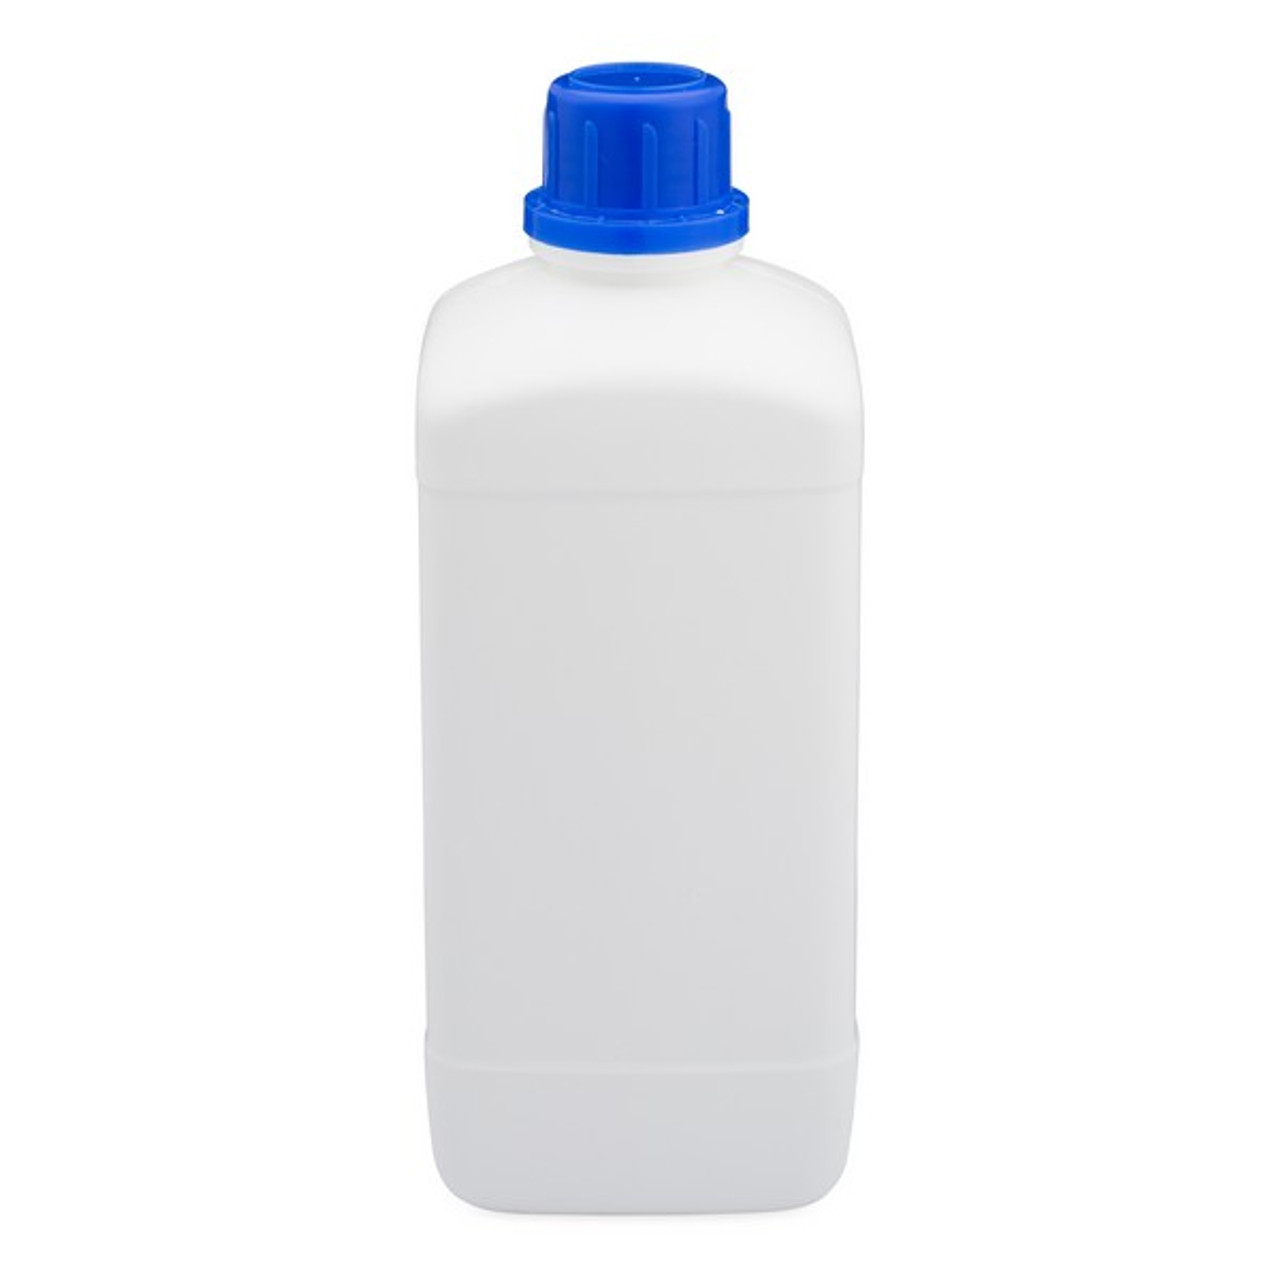 34 Oz White Hdpe Kautex Square Leakproof Bottles Berlin